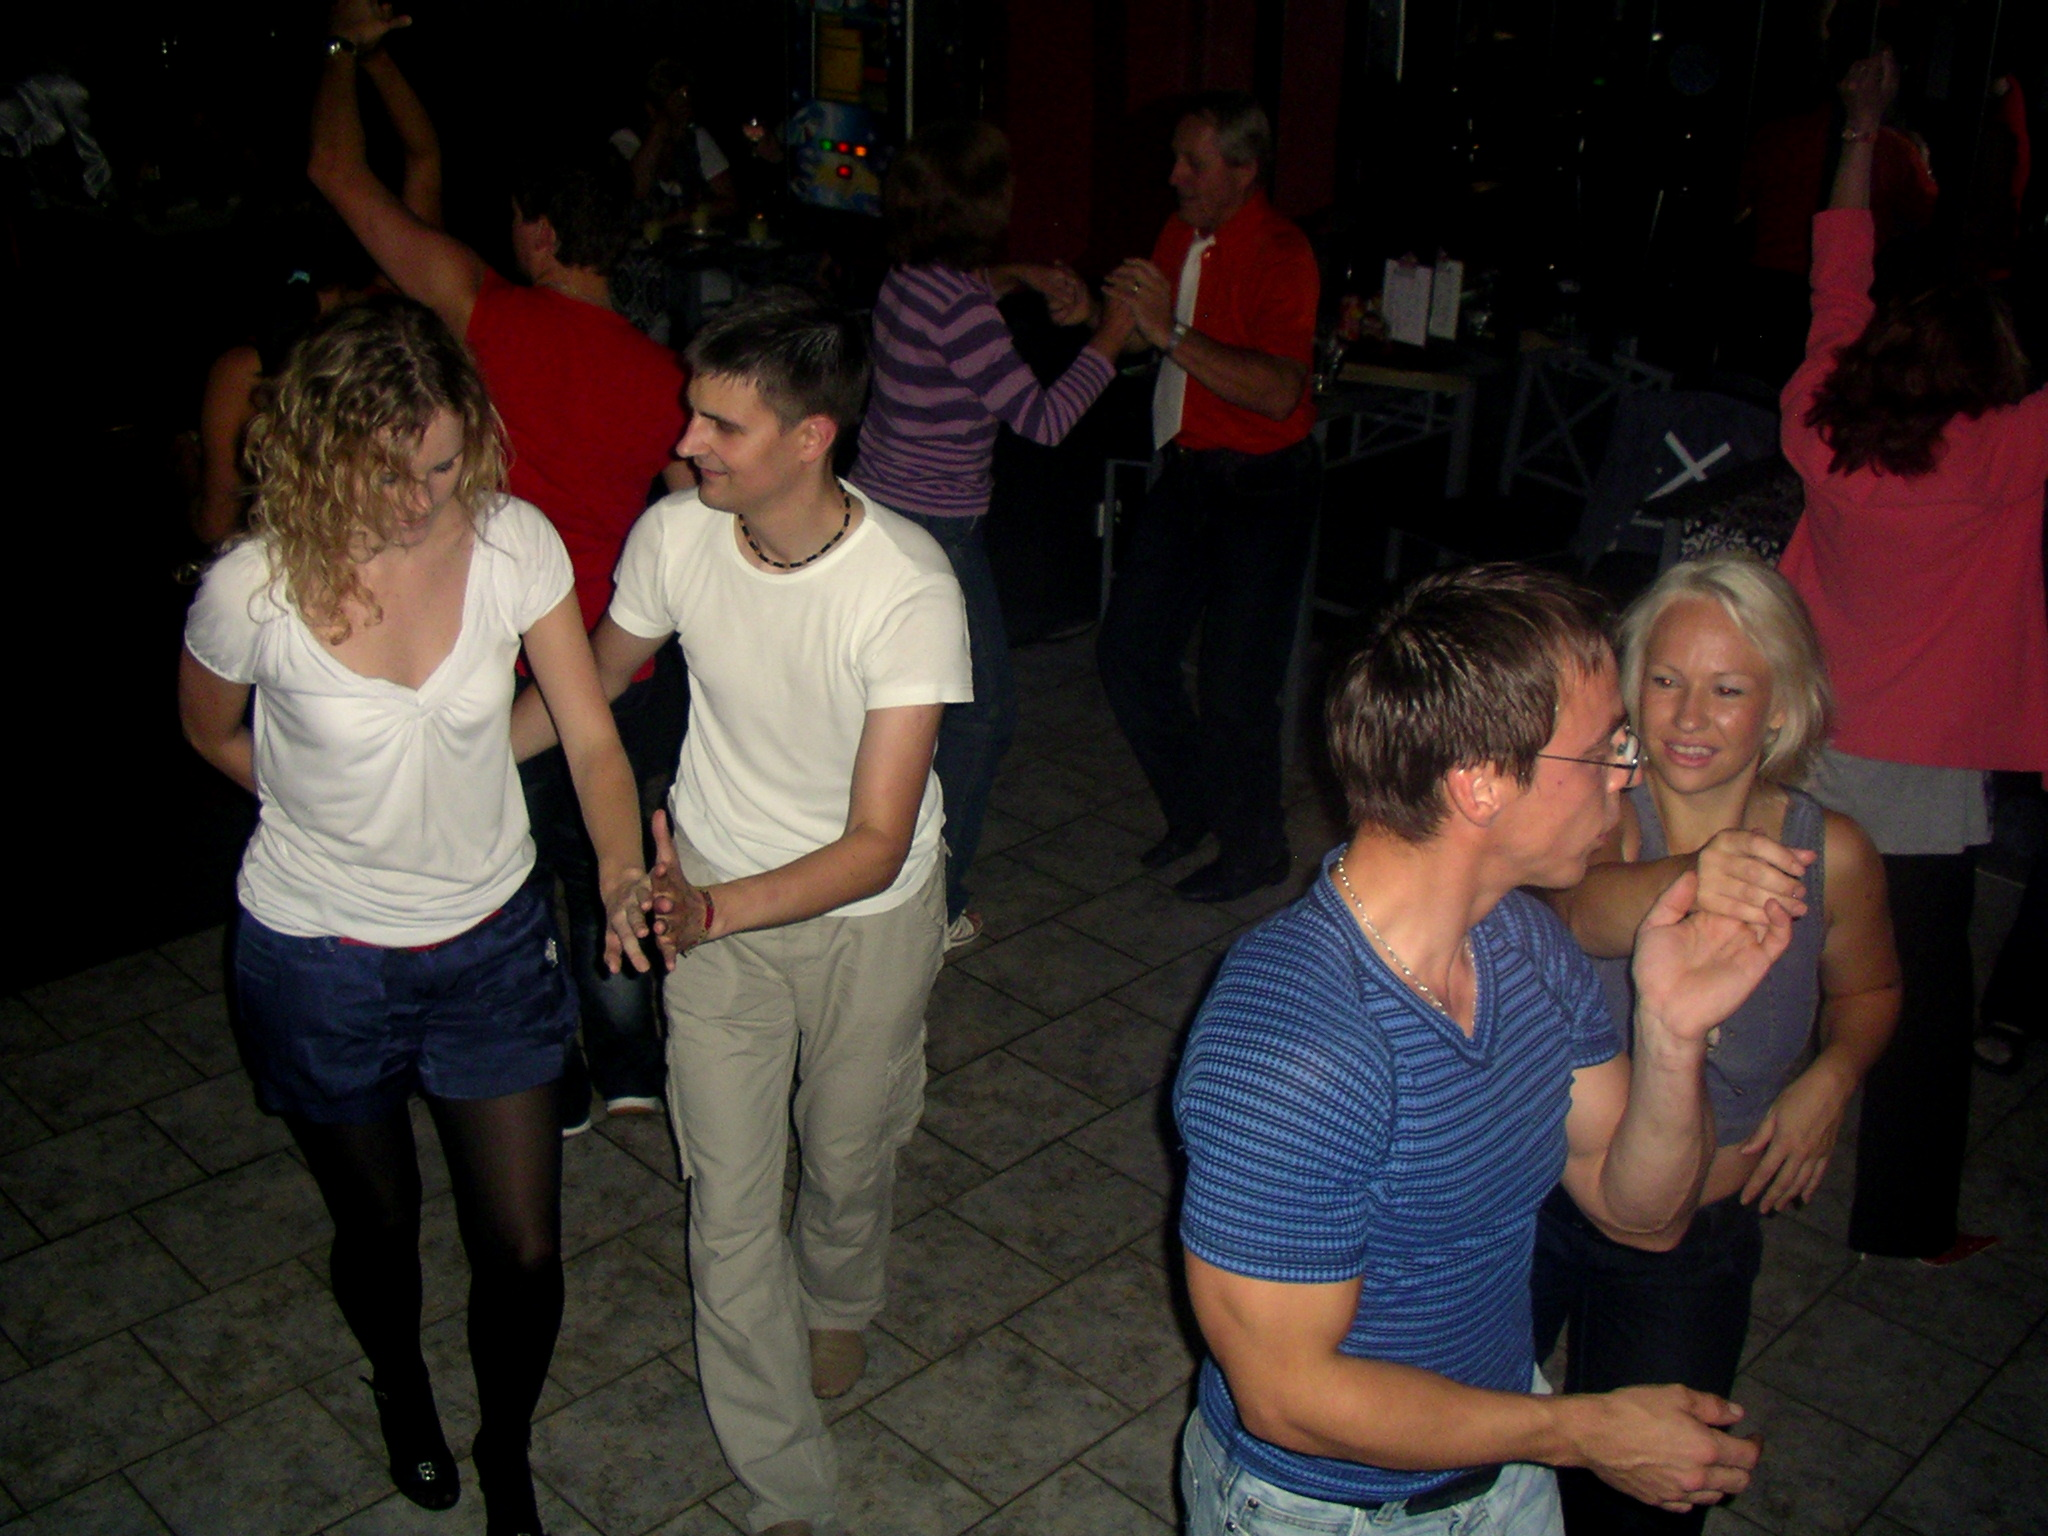 party_v_barvach_8_20111111_2017182657